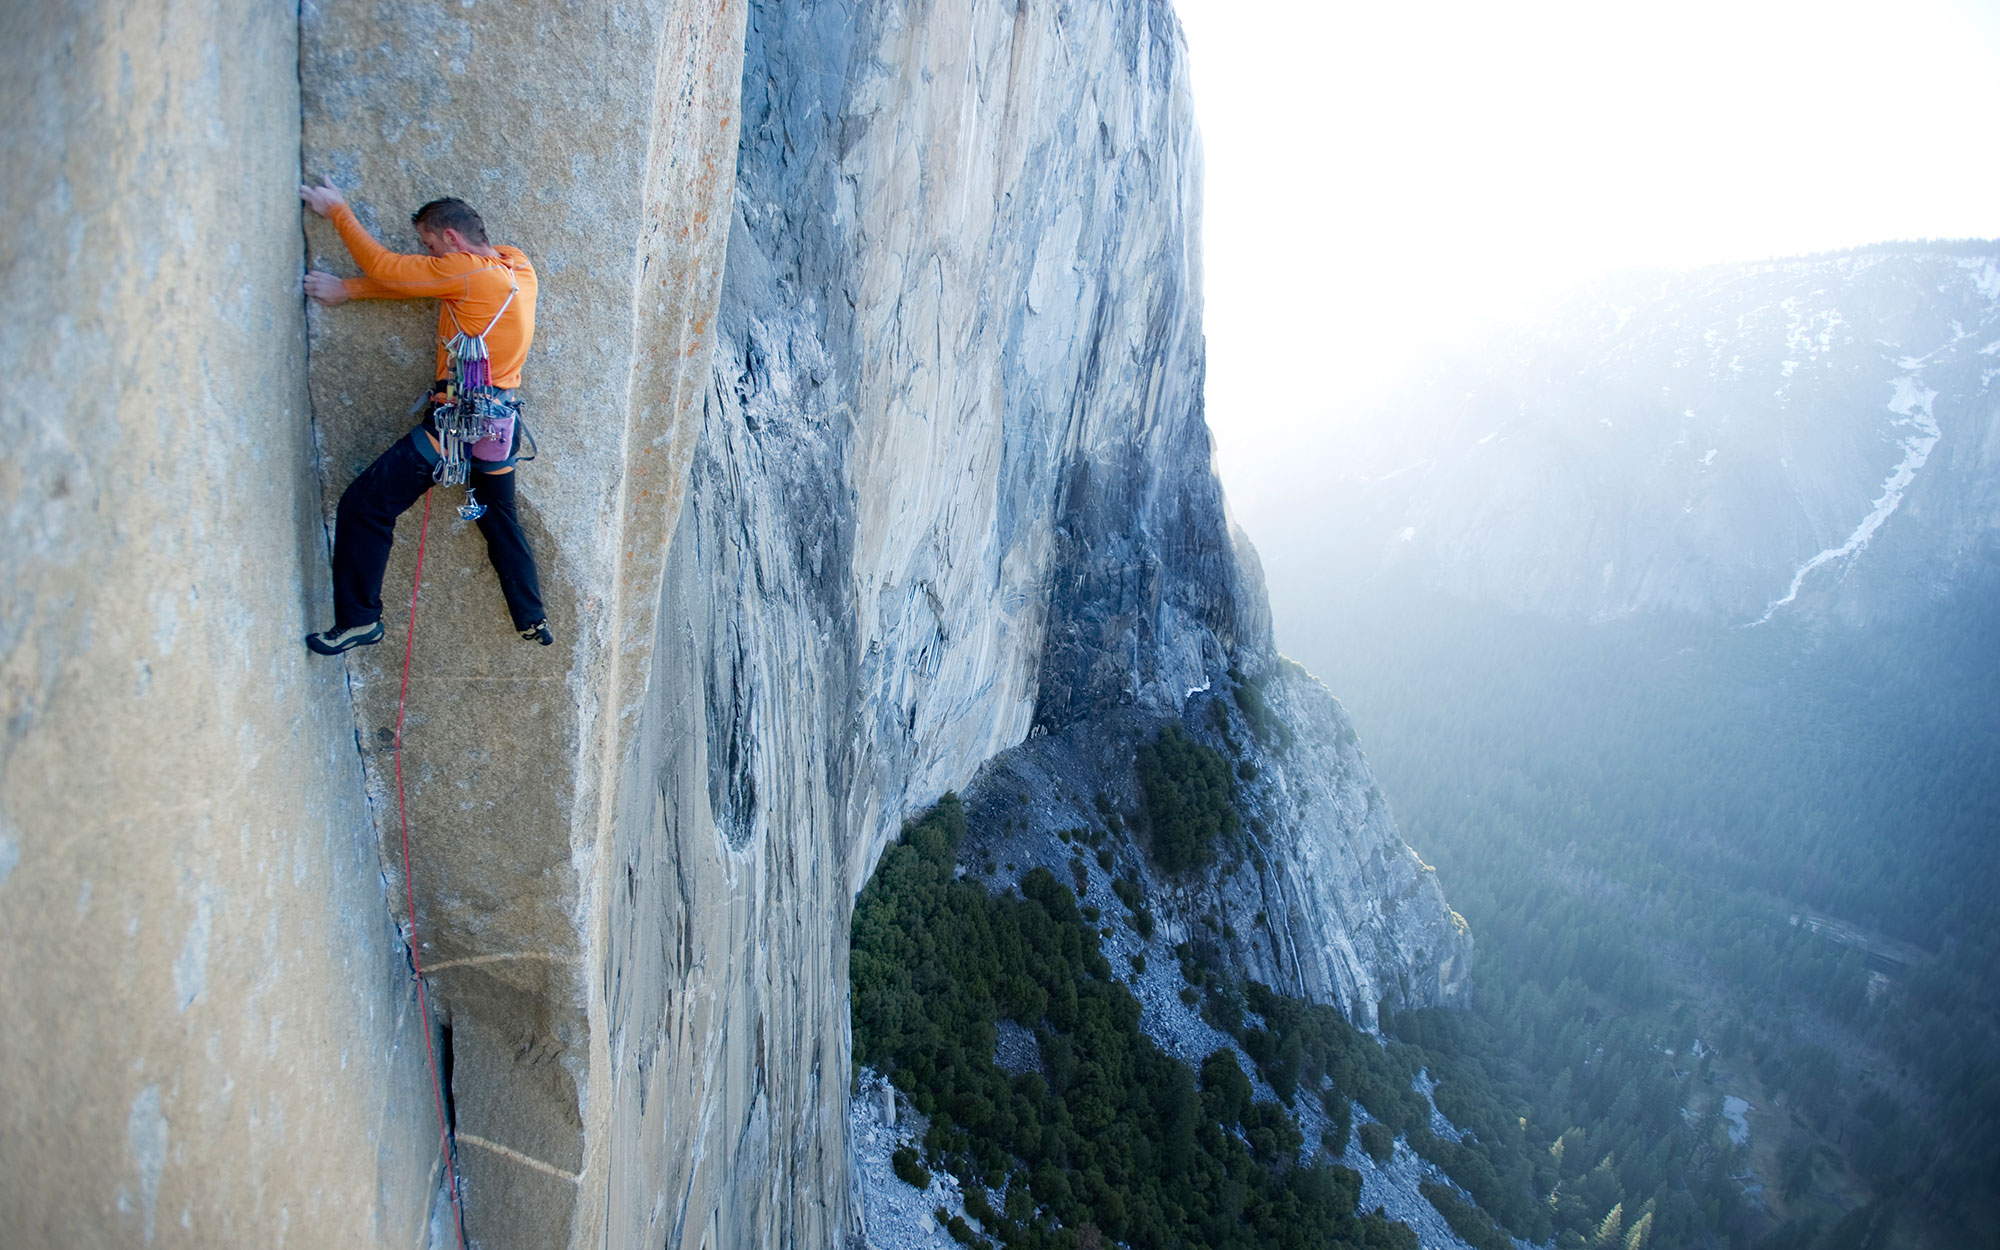 A man attempts a dihedral pitch on El Cap in Yosemite National Park, California.